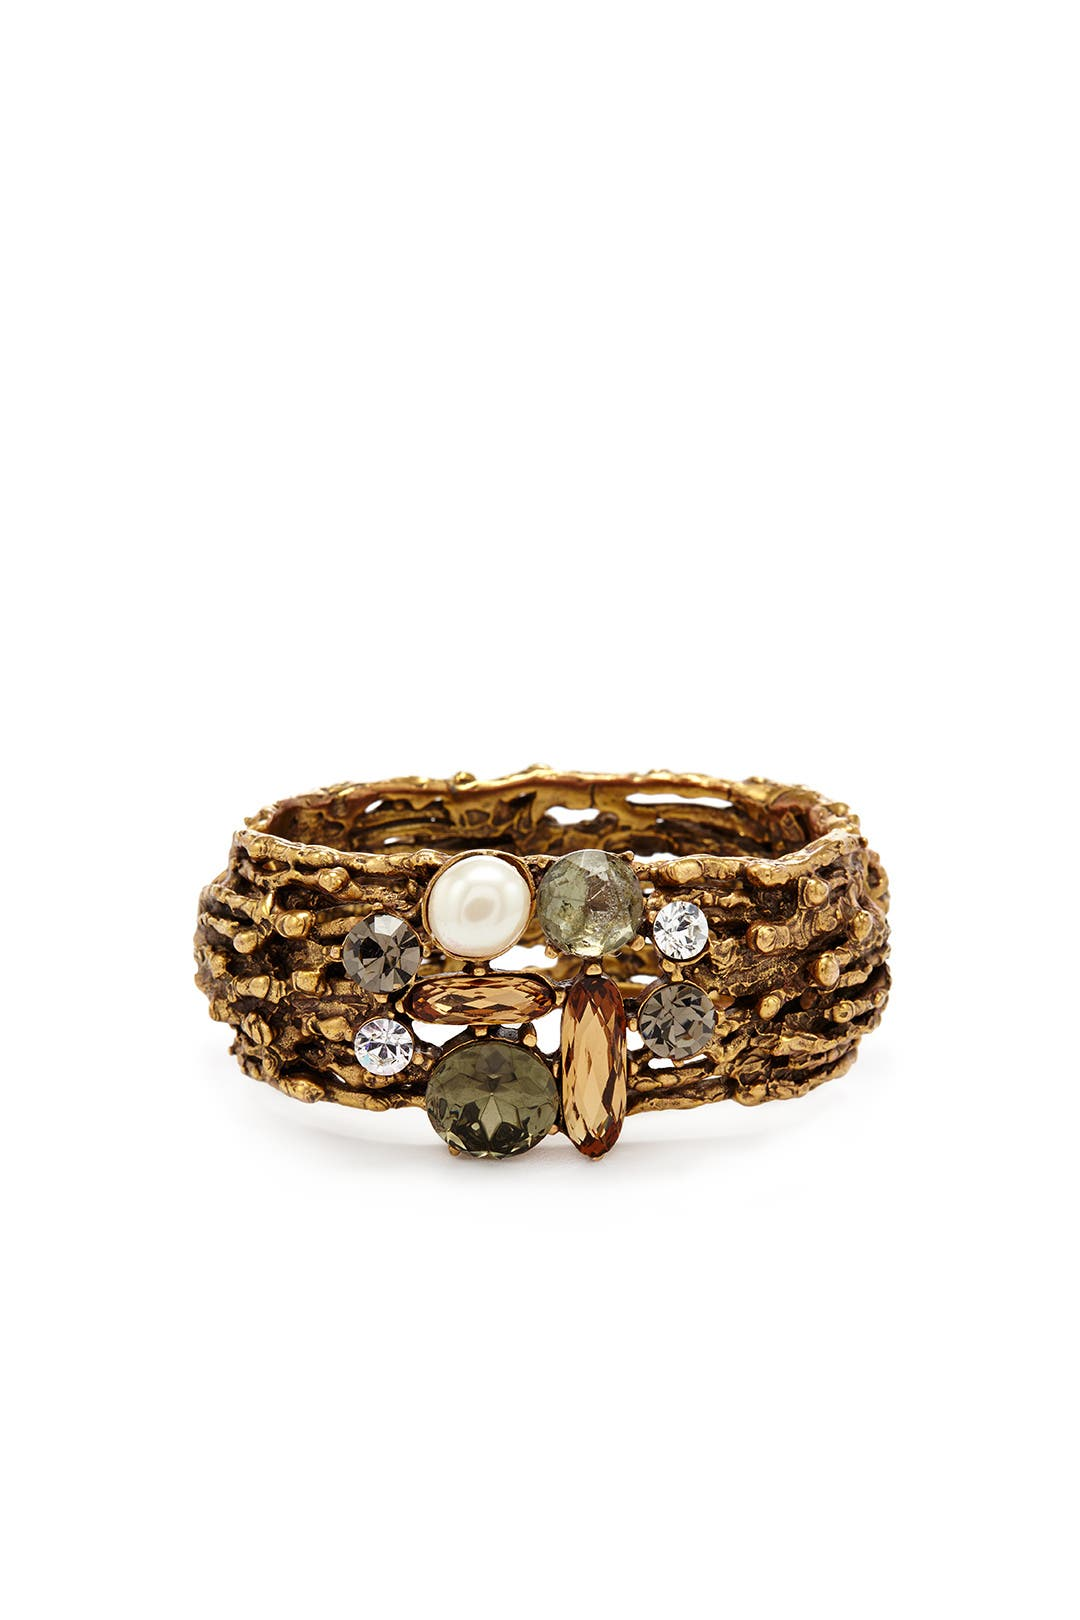 Jeweled Champagne Branch Cuff by Oscar de la Renta